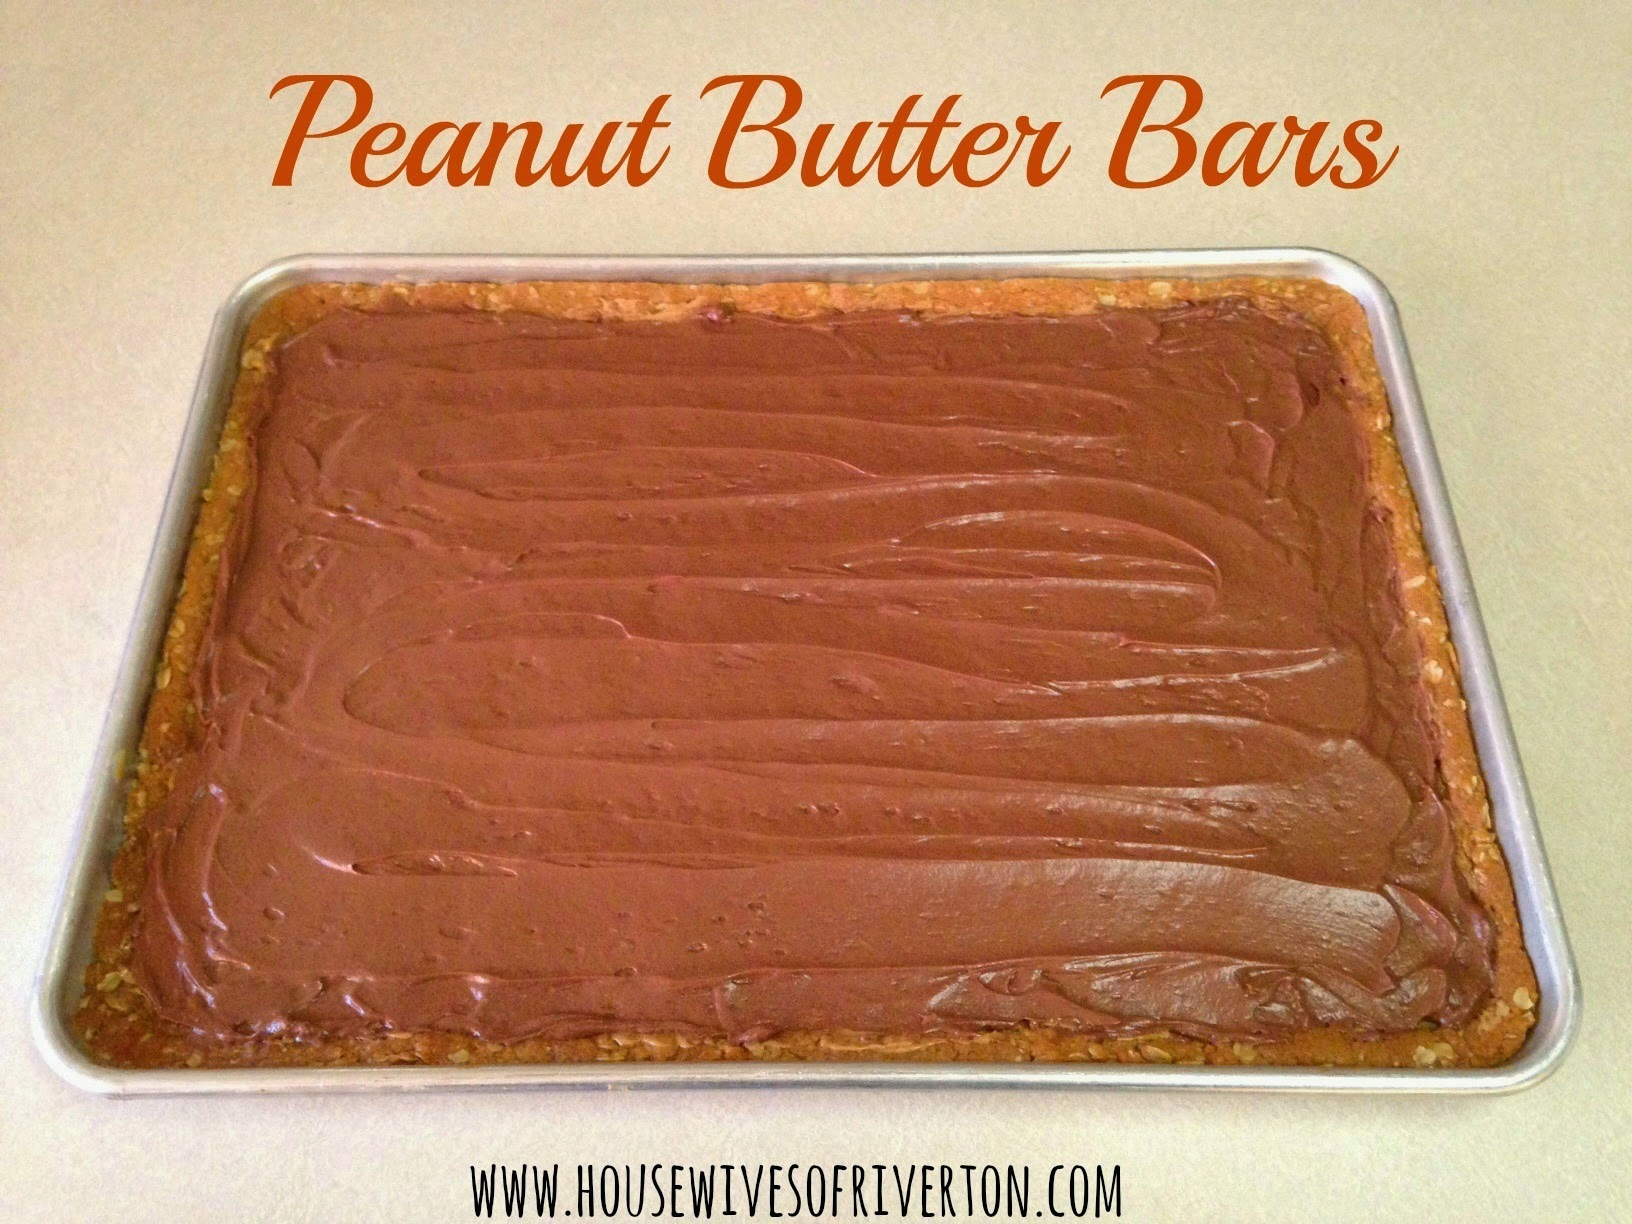 Peanut Butter Bars- Lunch Lady